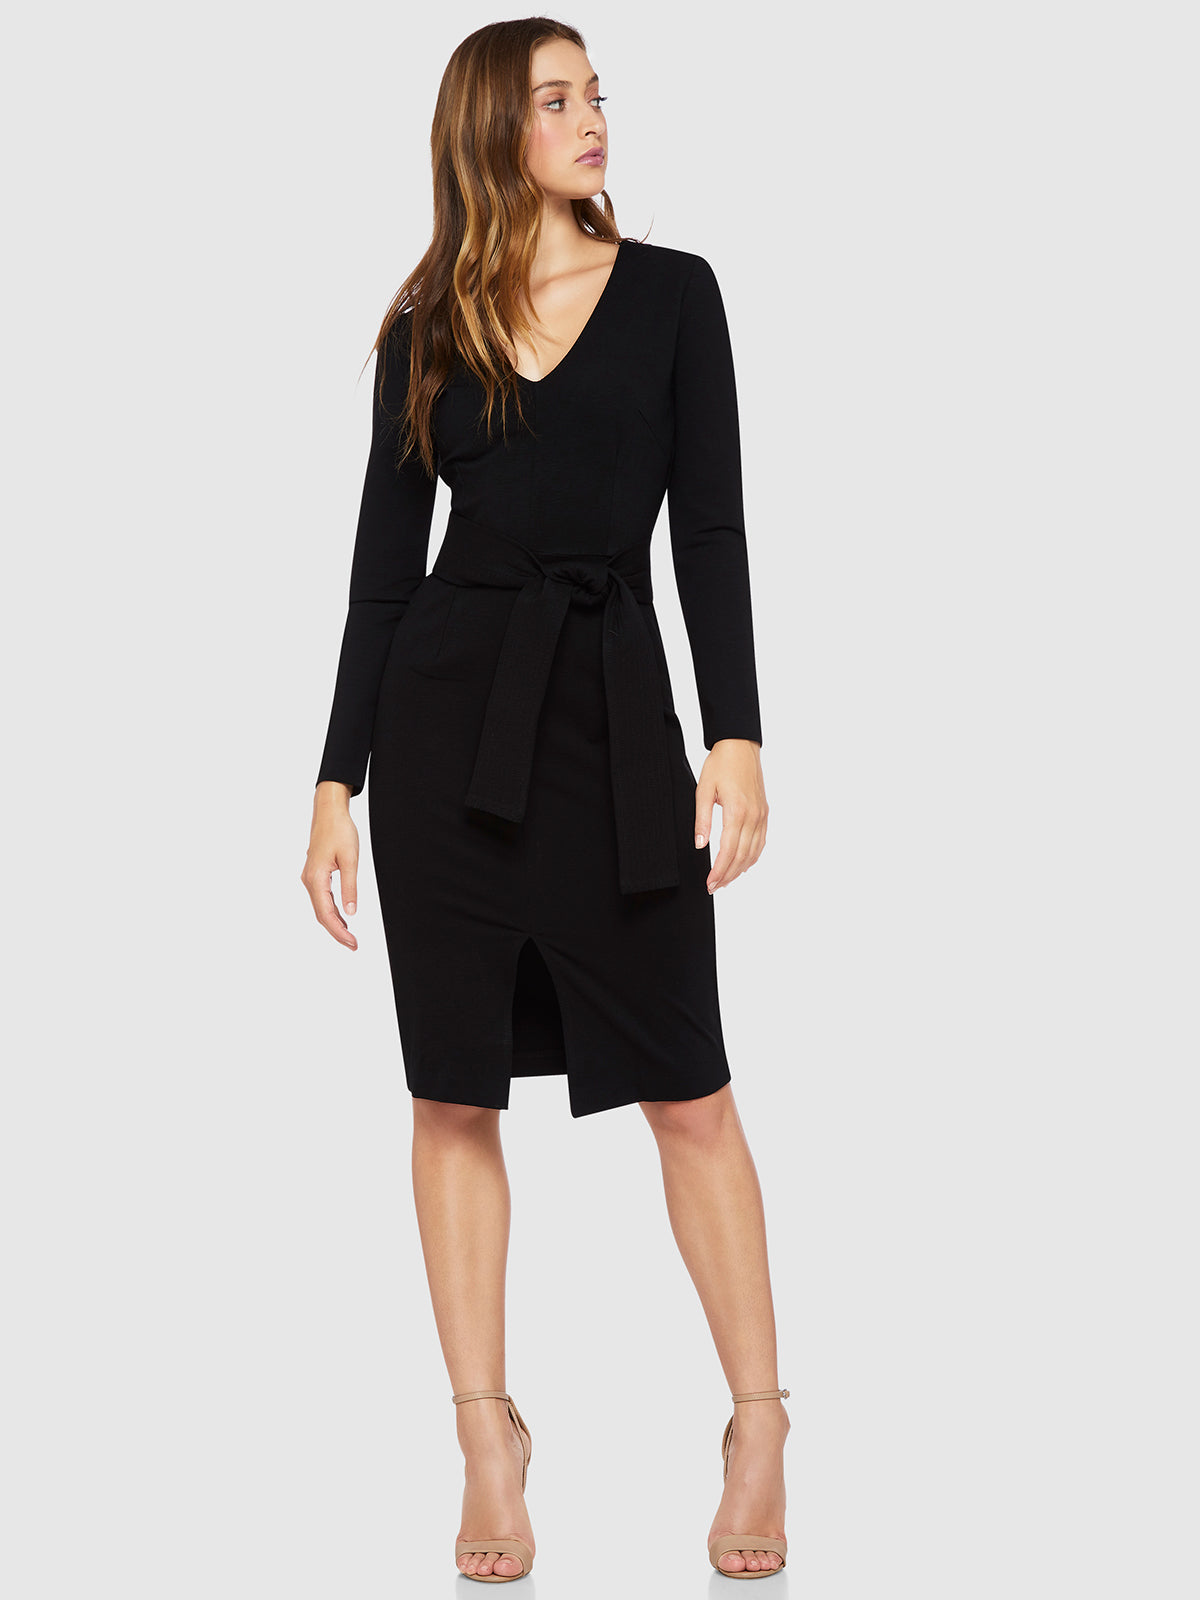 ALICIA PONTI BELT WAIST DRESS BLACK